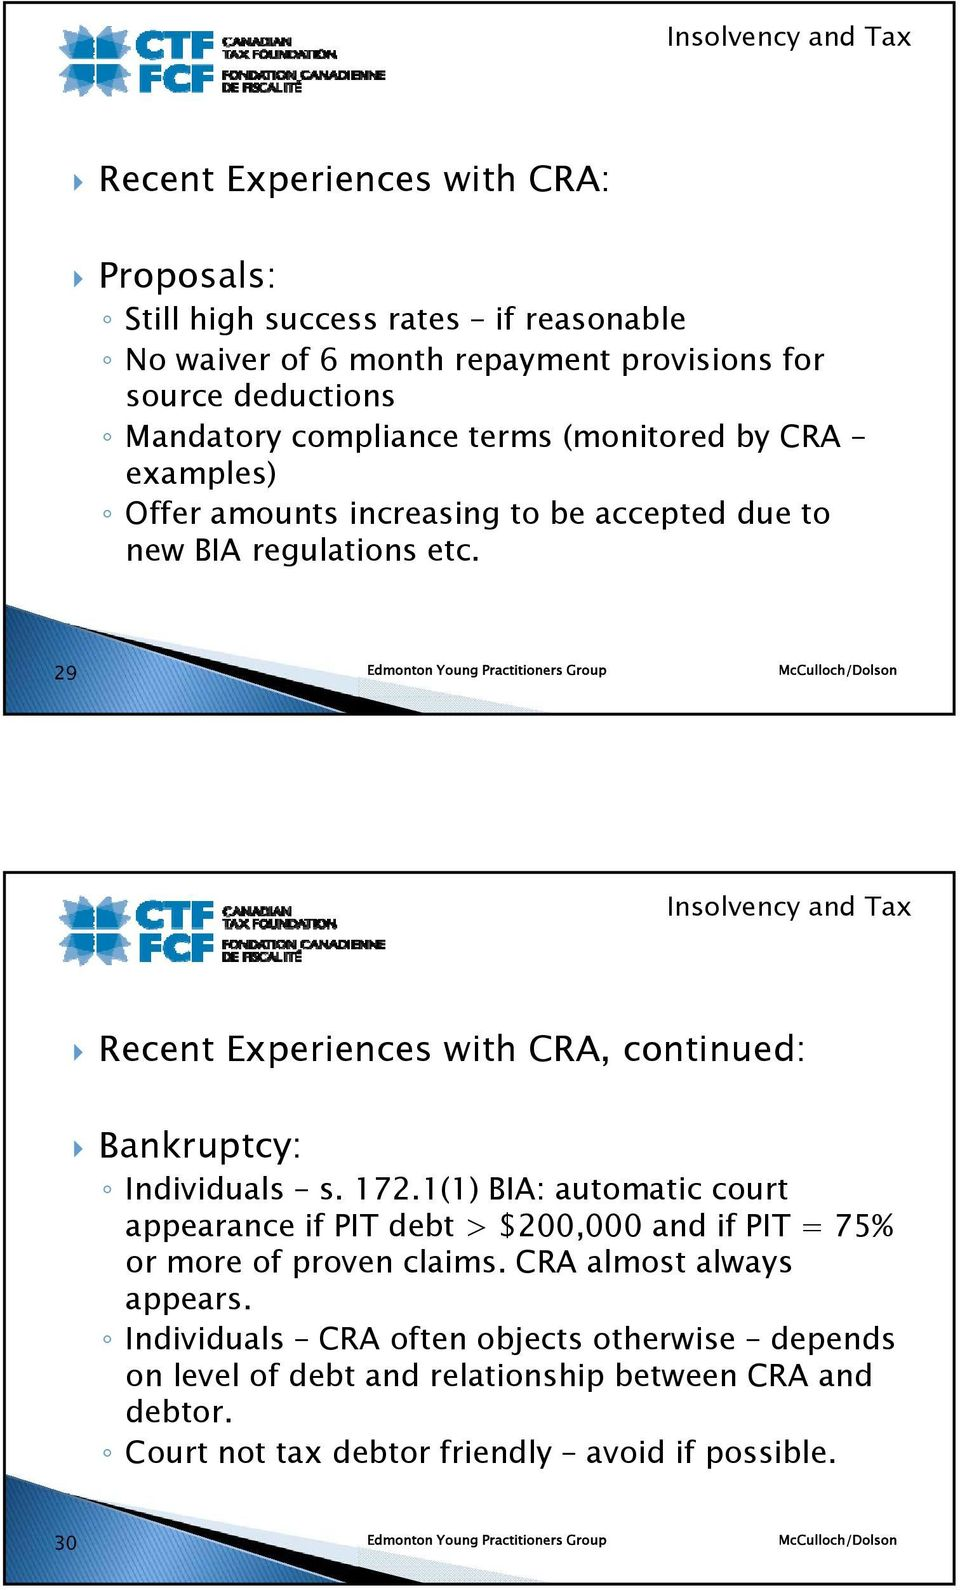 29 Recent Experiences with CRA, continued: Bankruptcy: Individuals s. 172.